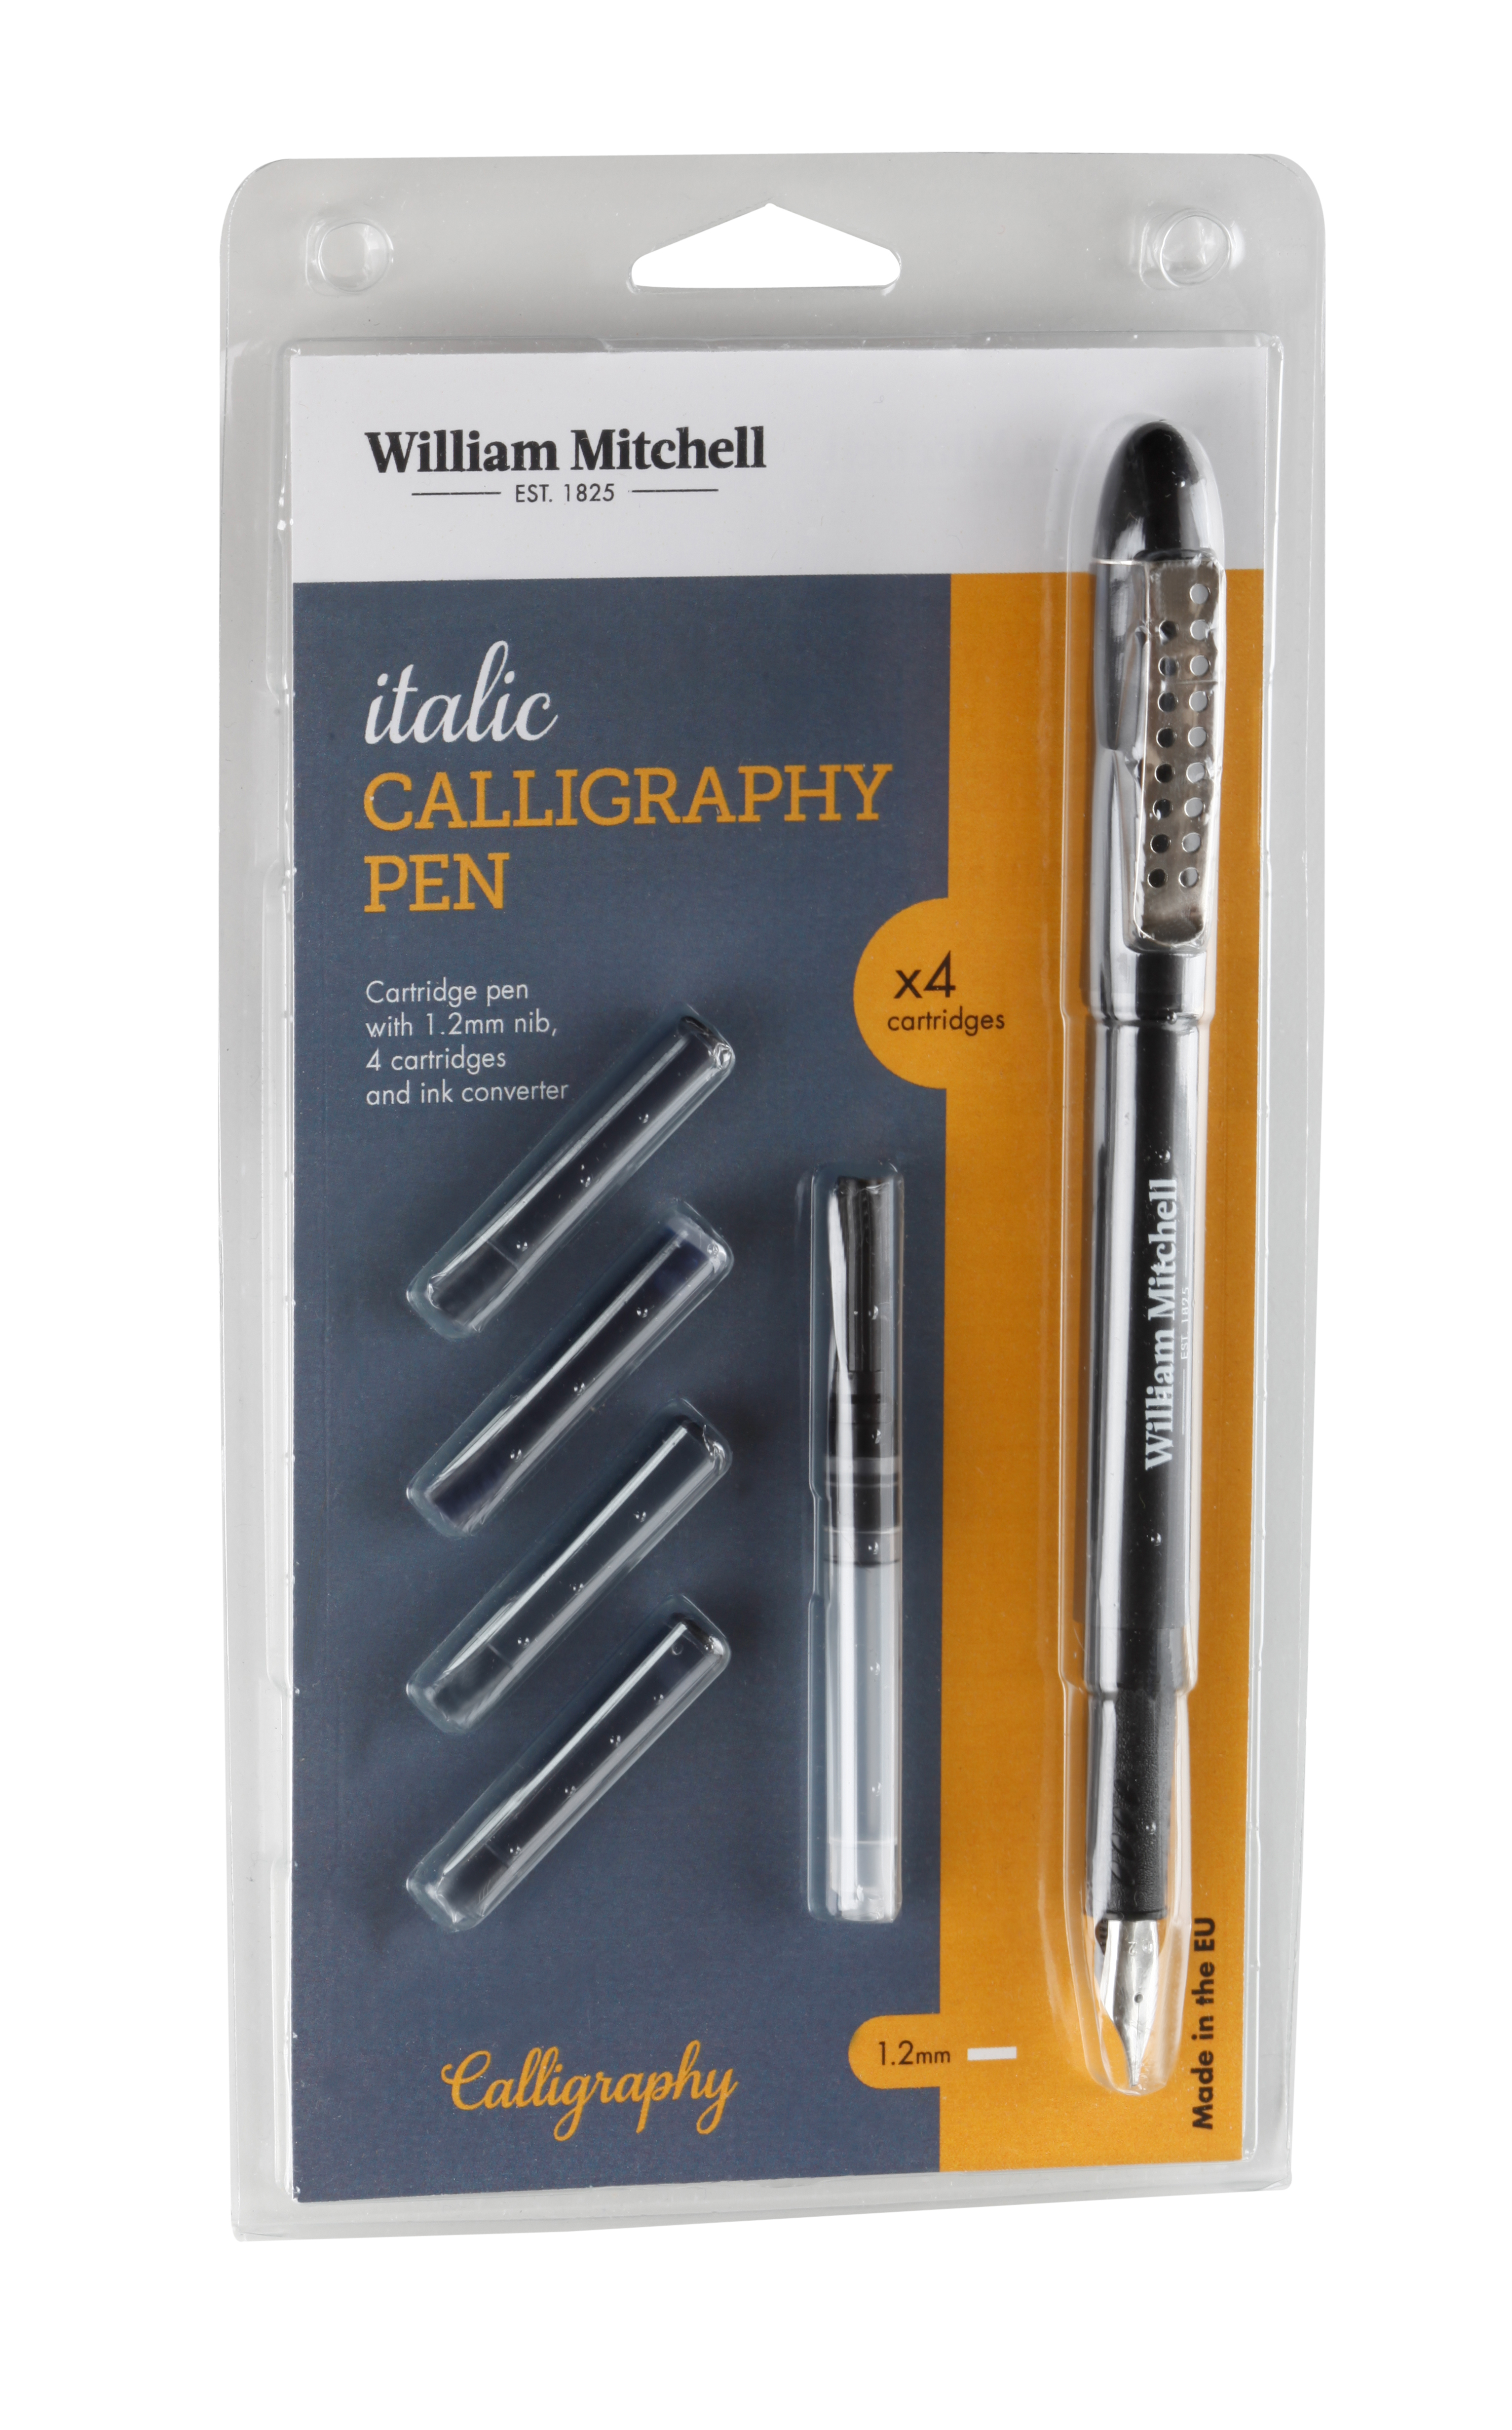 ITALIC CALLIGRAPHY PEN WILLIAM MITCHELL